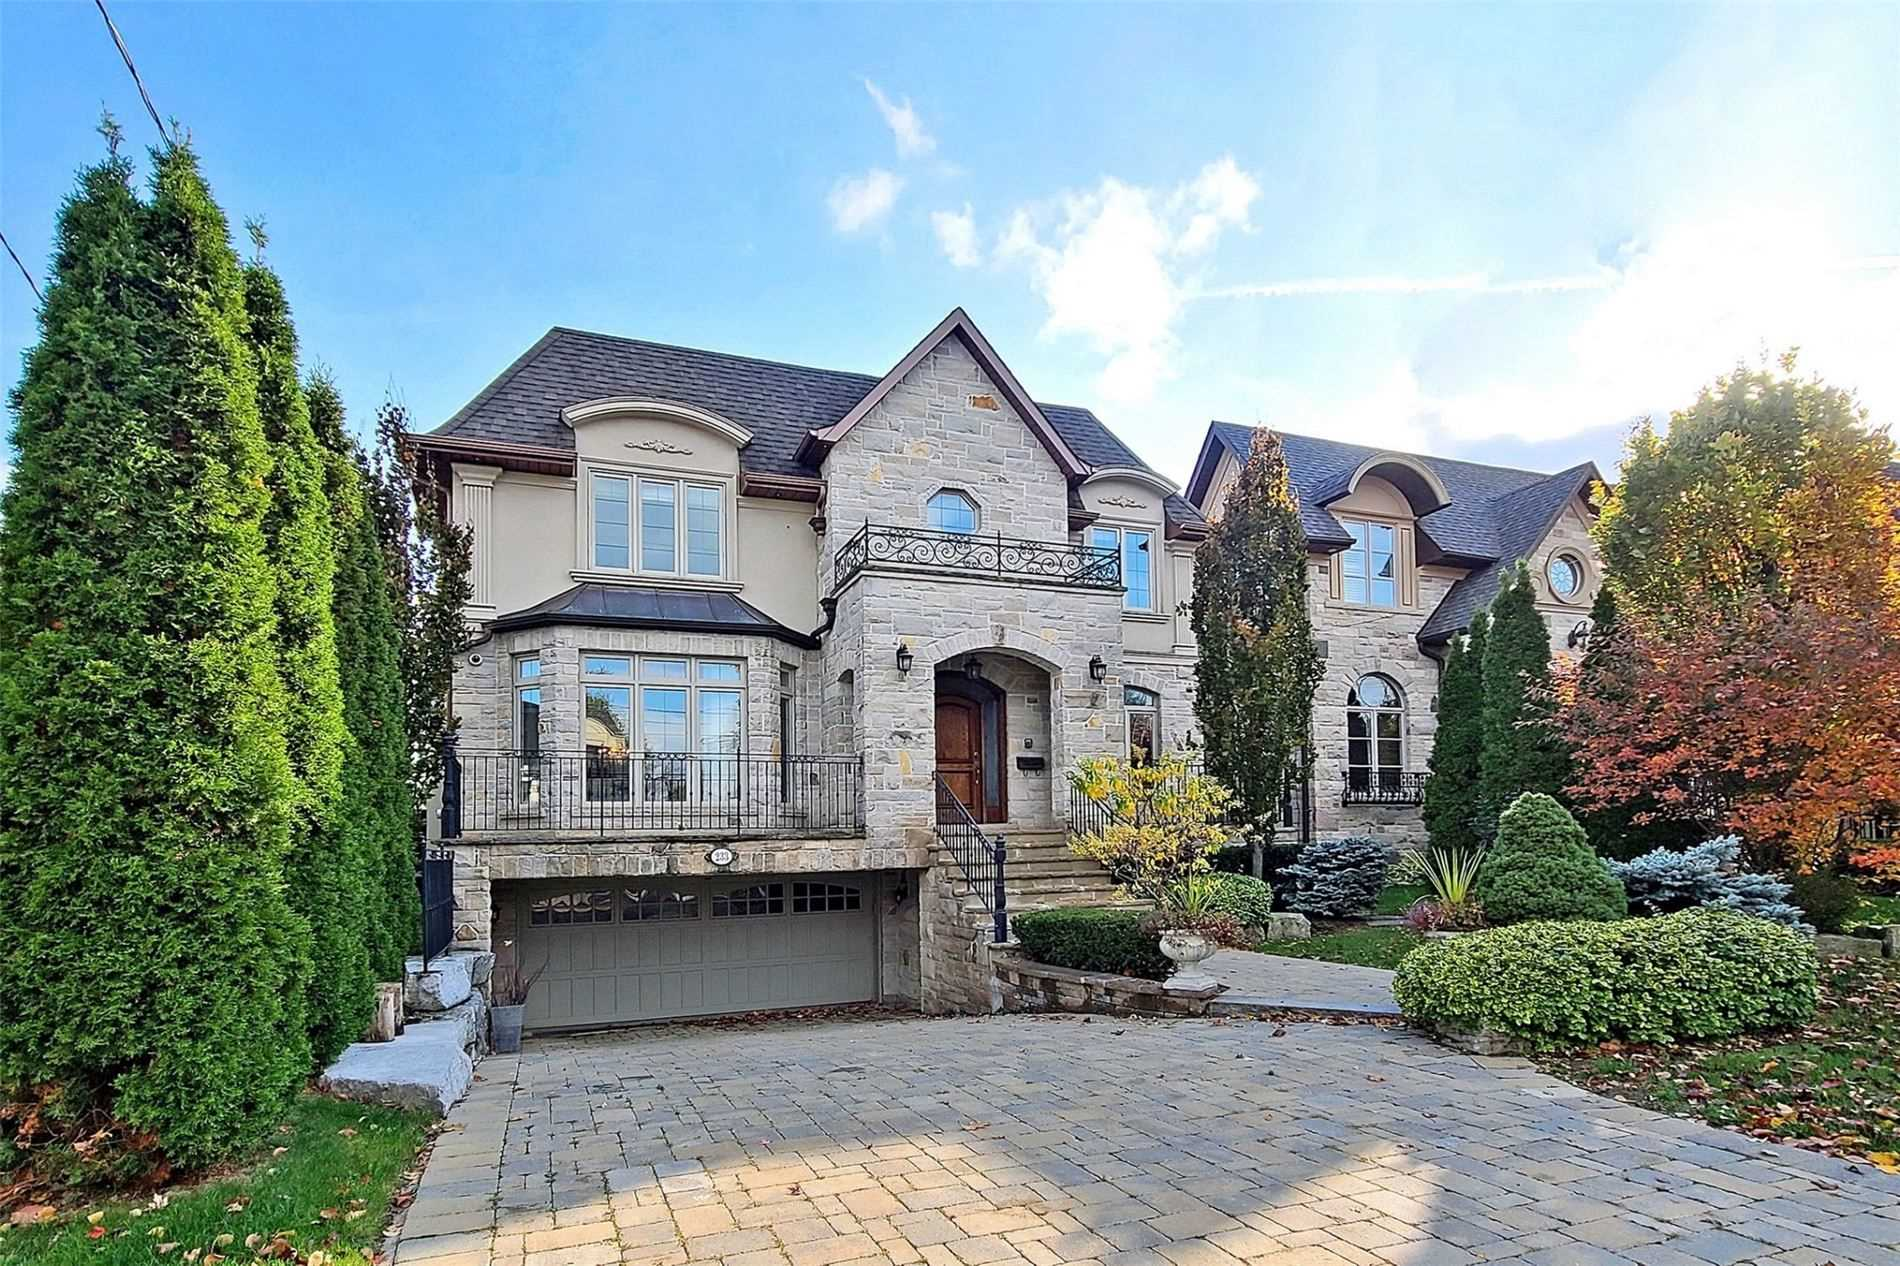 233 Olive Ave - C4967061 - $3,288,000